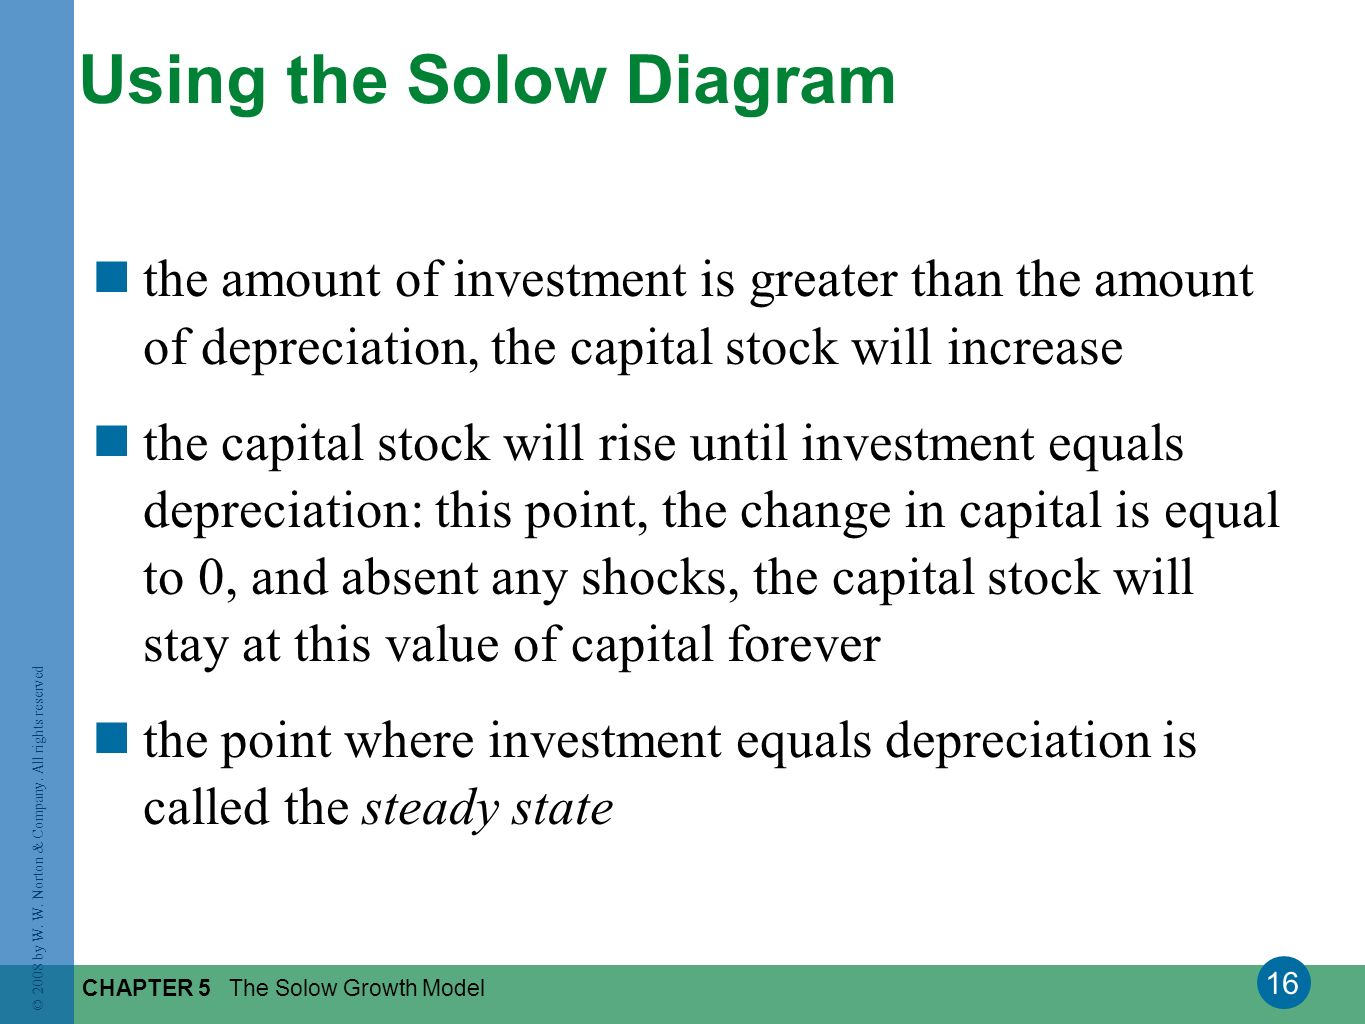 16 © 2008 by W. W. Norton & Company. All rights reserved CHAPTER 5 The Solow Growth Model Using the Solow Diagram the amount of investment is greater